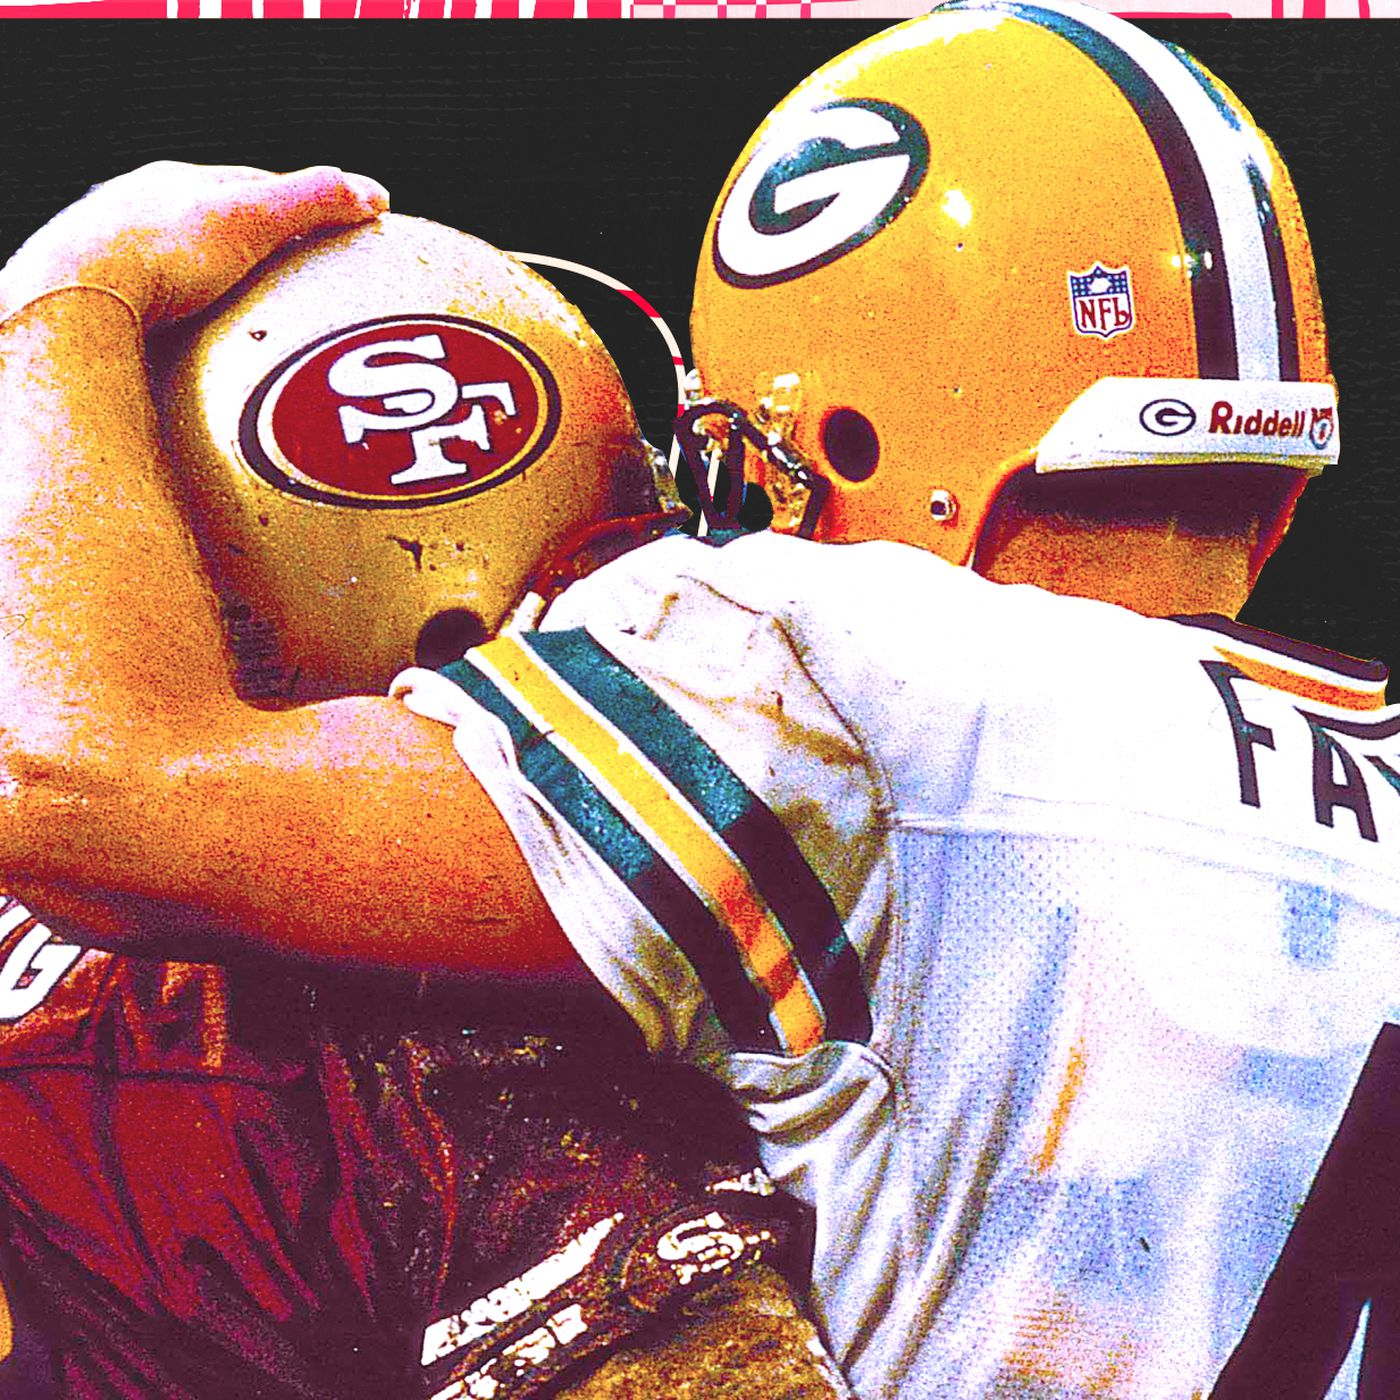 A Look Back At The Intense 49ers Vs Packers History In The Nfl Playoffs Sbnation Com